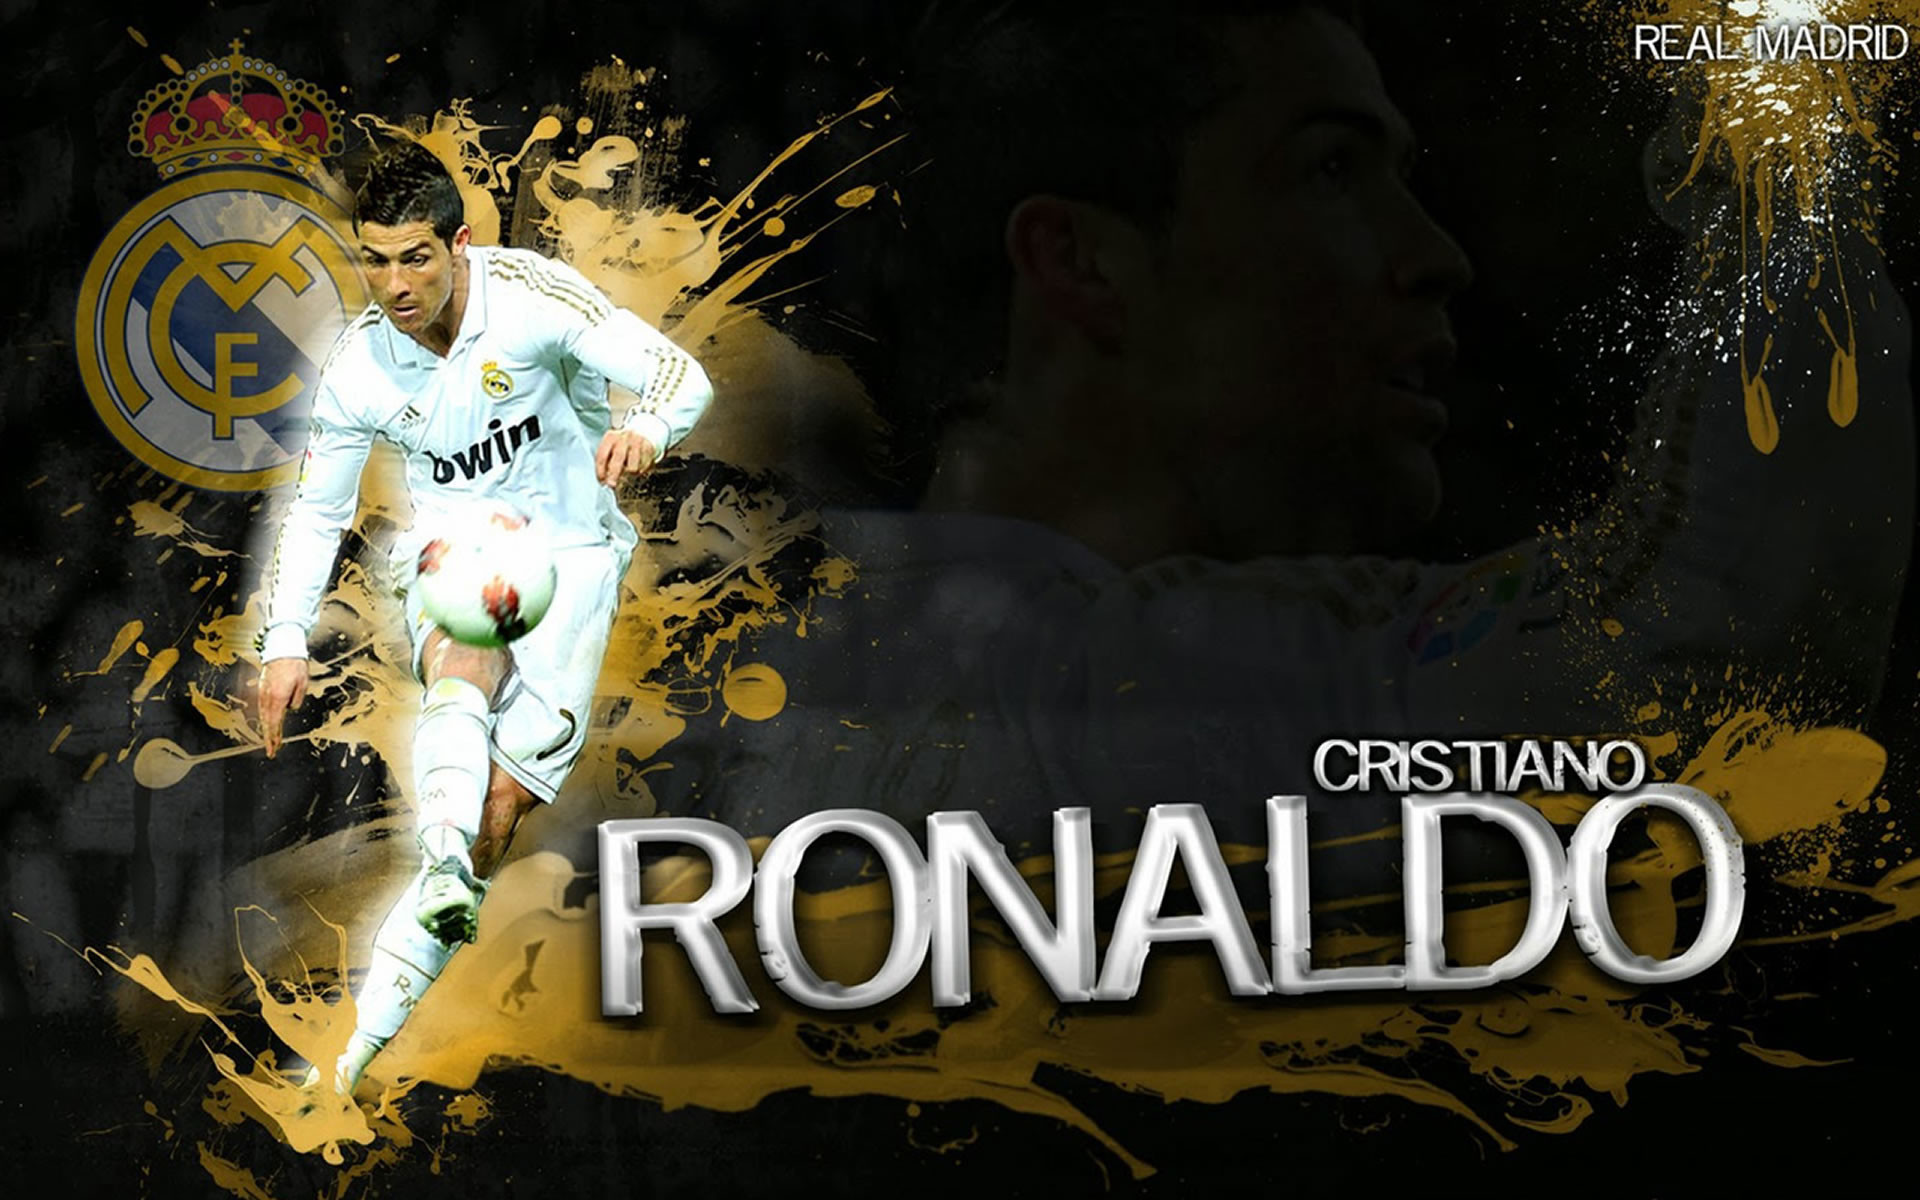 1920x1200 Cristiano Ronaldo Wallpaper Real Madrid 2015